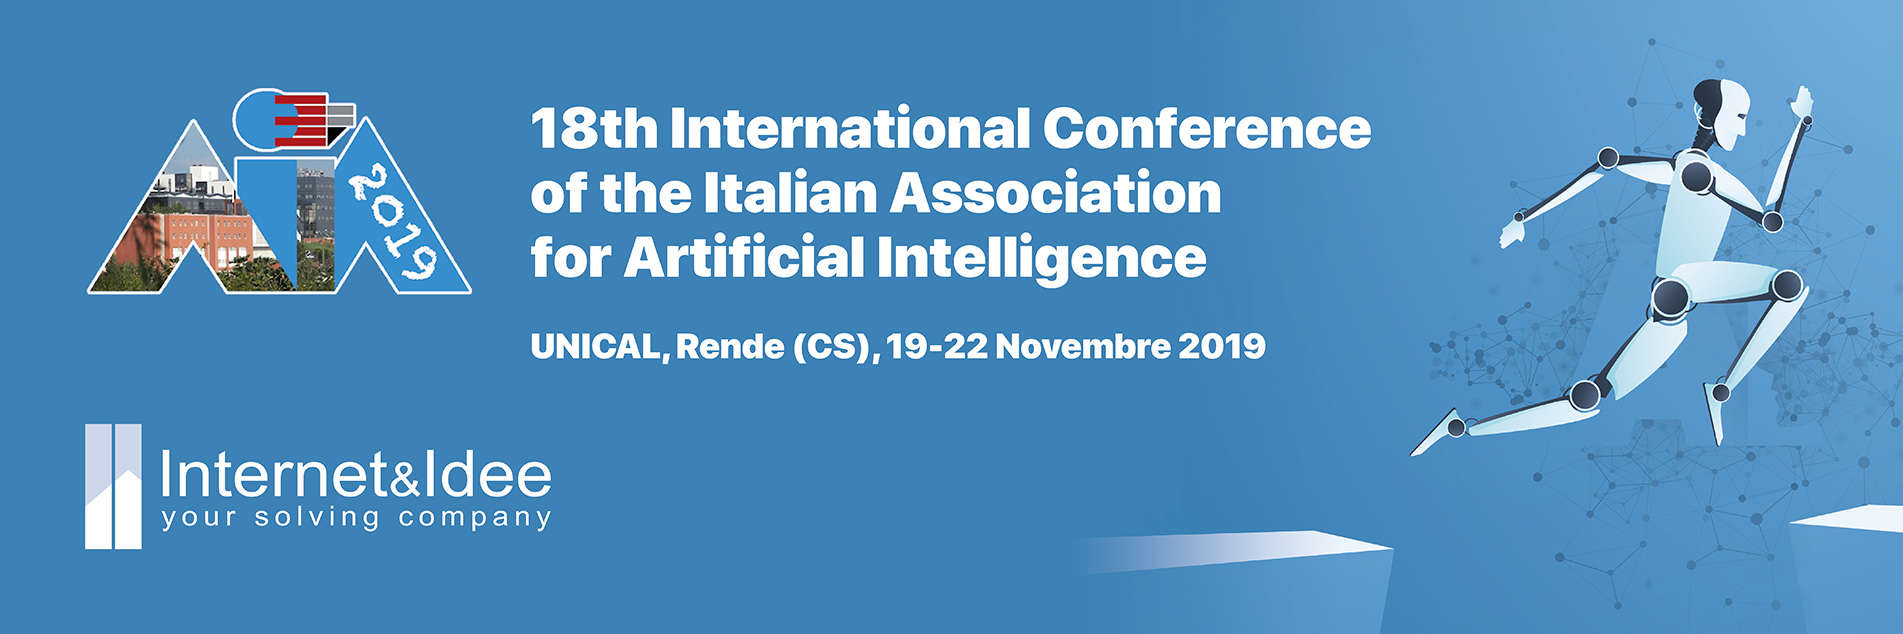 I&I sponsor della 18° International Conference of the Italian Association for Artificial Intelligence (AIIA 2019)